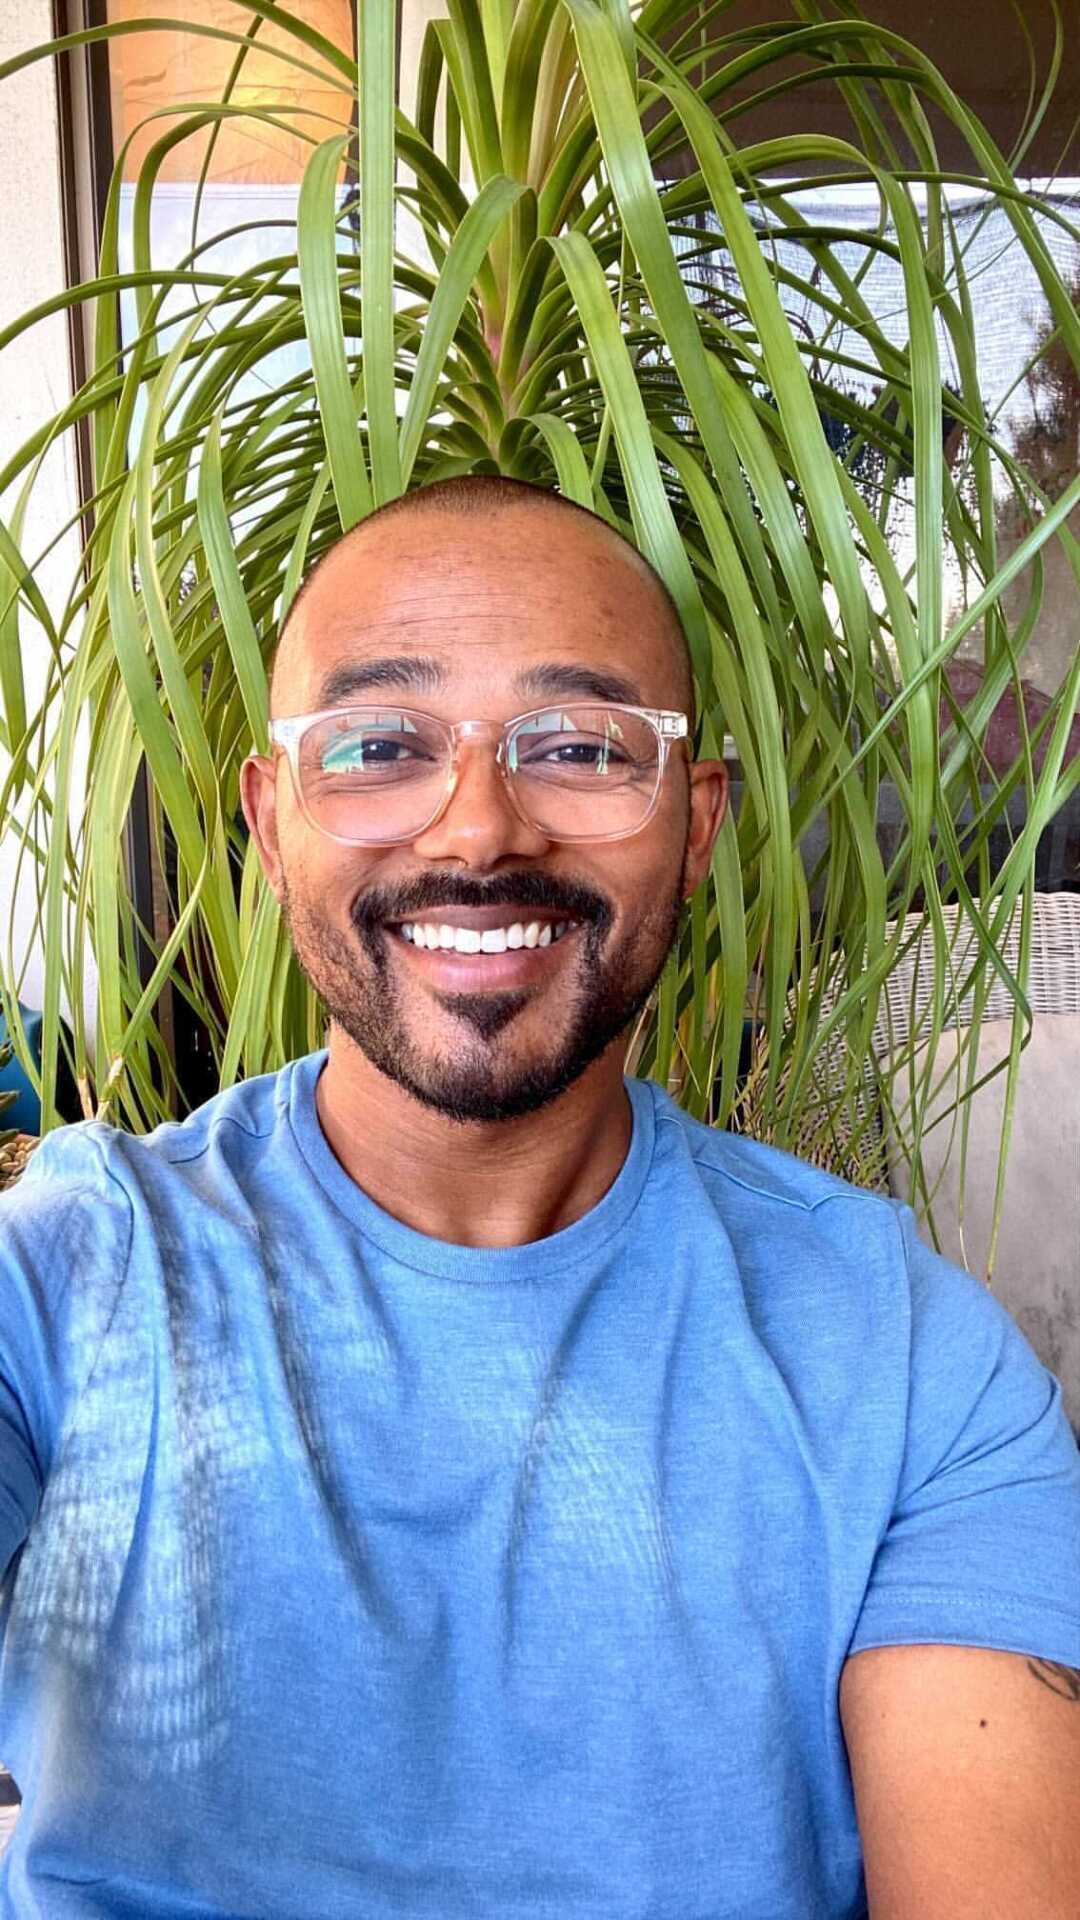 A smiling man wearing clear-framed glasses and a blue T-shirt, in front of a hanging plant.